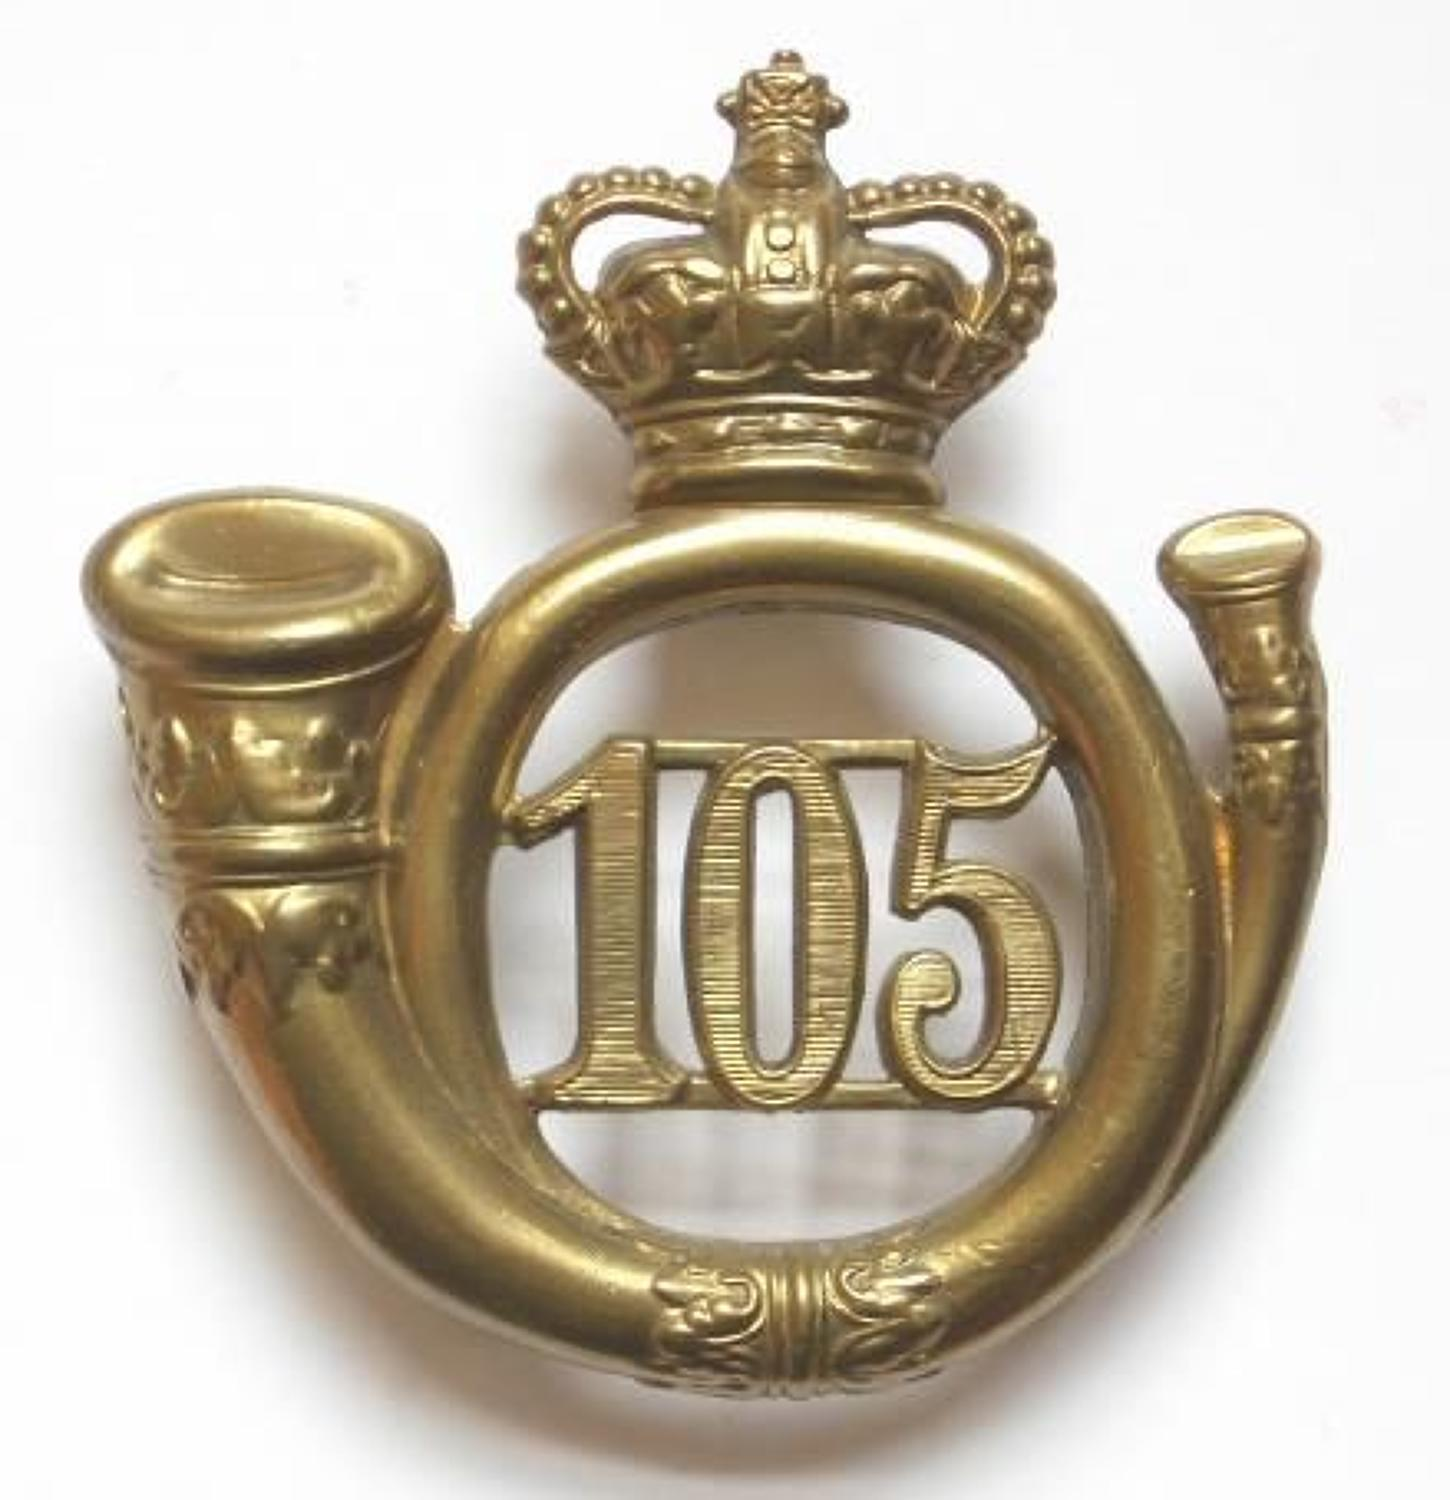 105th (Madras Light Infantry) Regiment, Victorian OR's glangarry badge